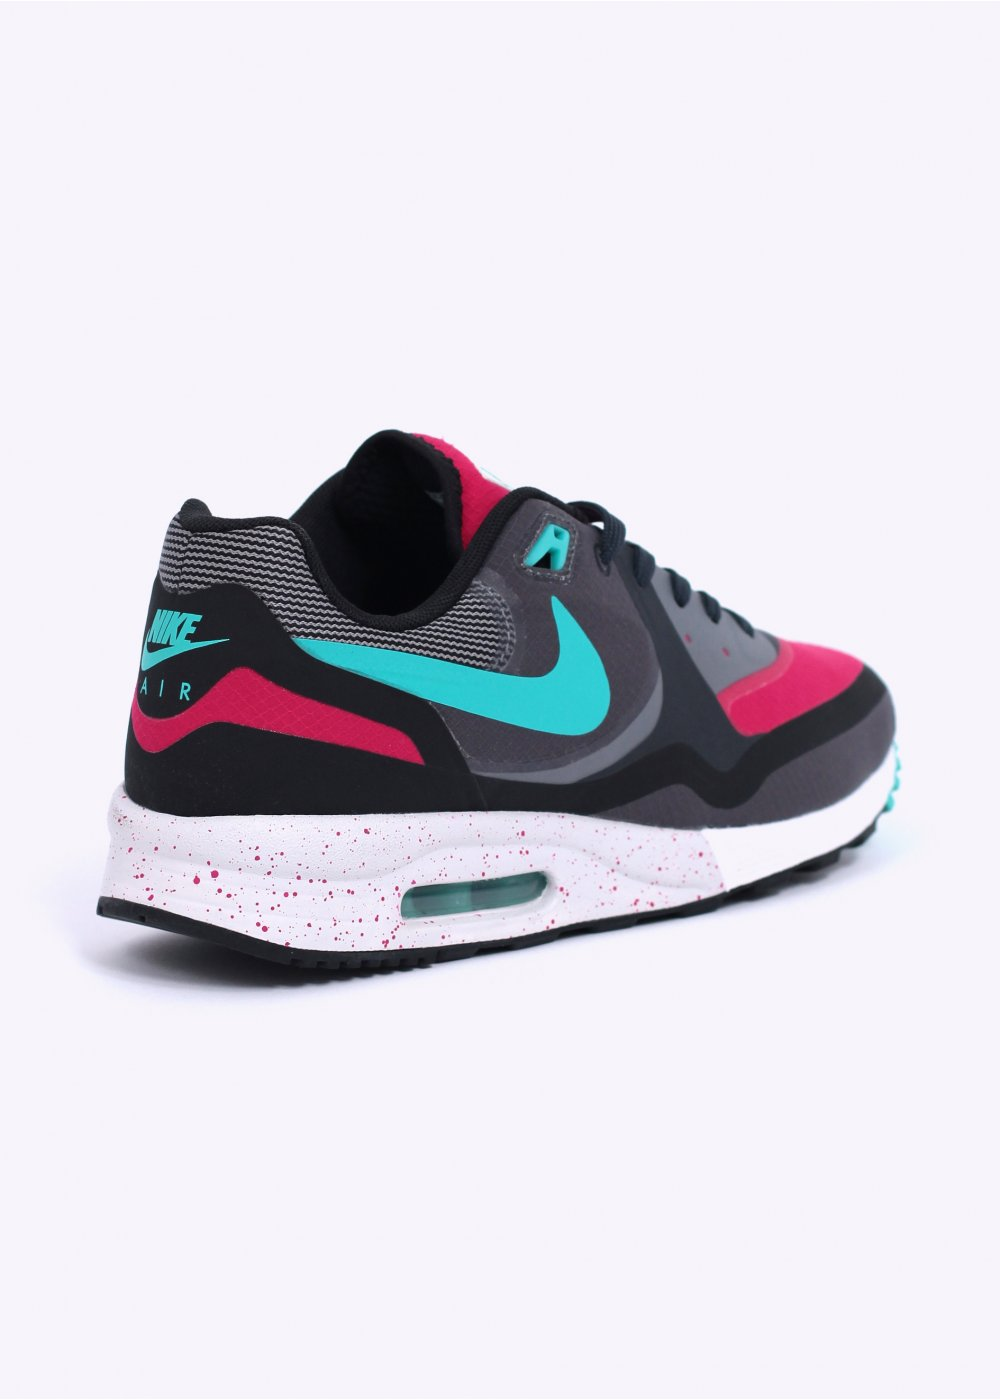 nike air max light wr black pink. Black Bedroom Furniture Sets. Home Design Ideas